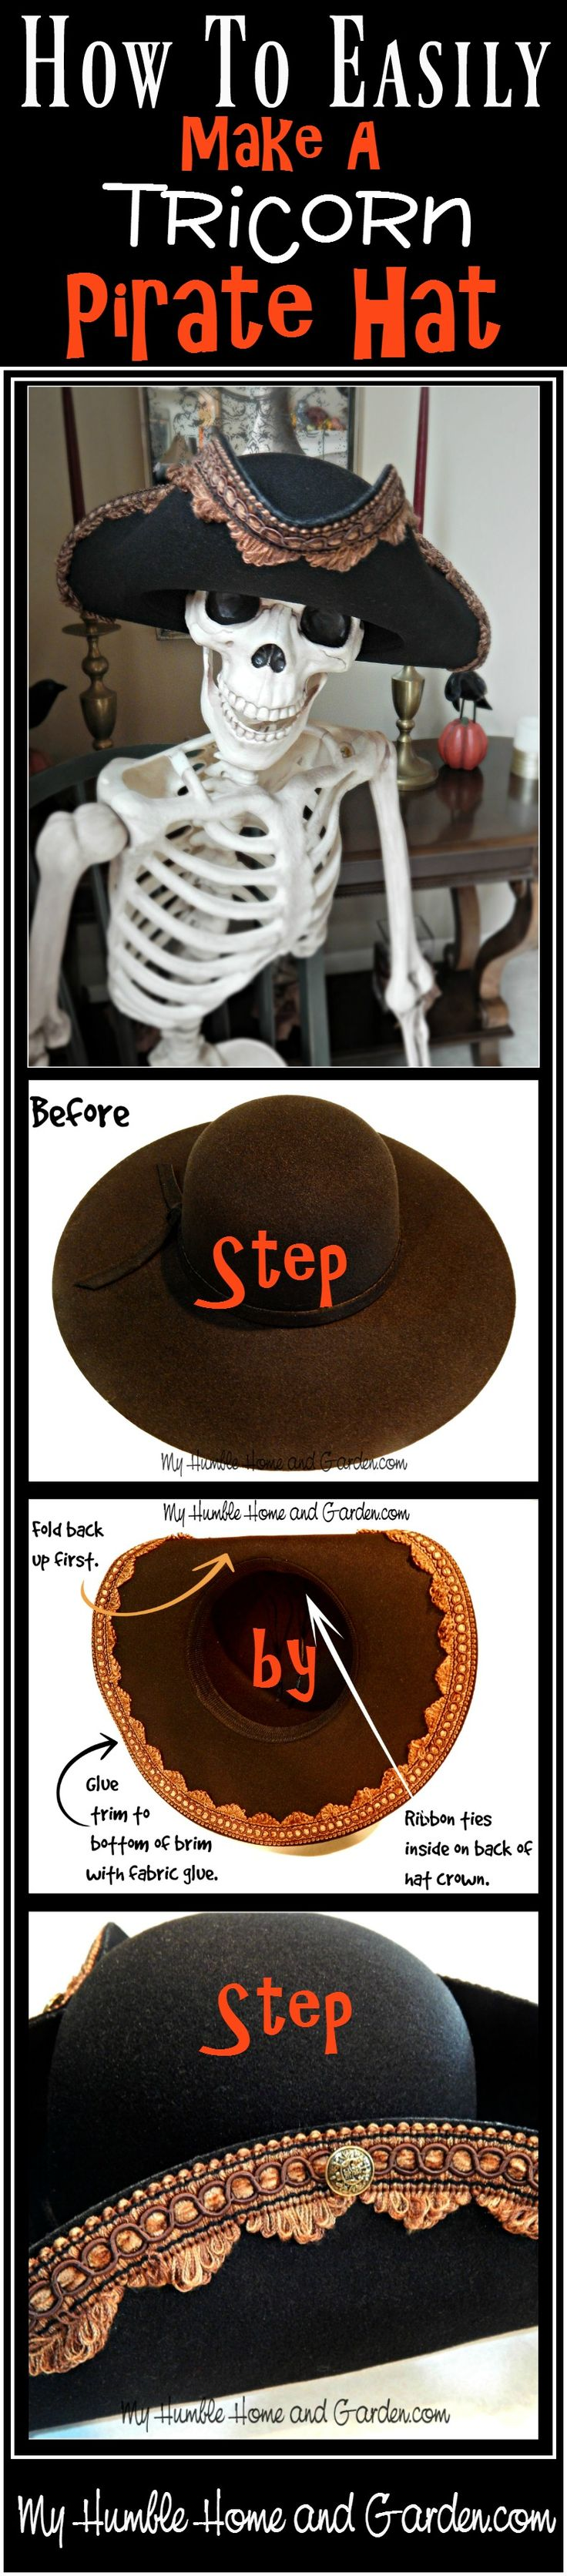 Best 25 pirate hat crafts ideas on pinterest kids pirate hat how to easily make a tricorn pirate hat on myhumblehomeandgarden pronofoot35fo Image collections